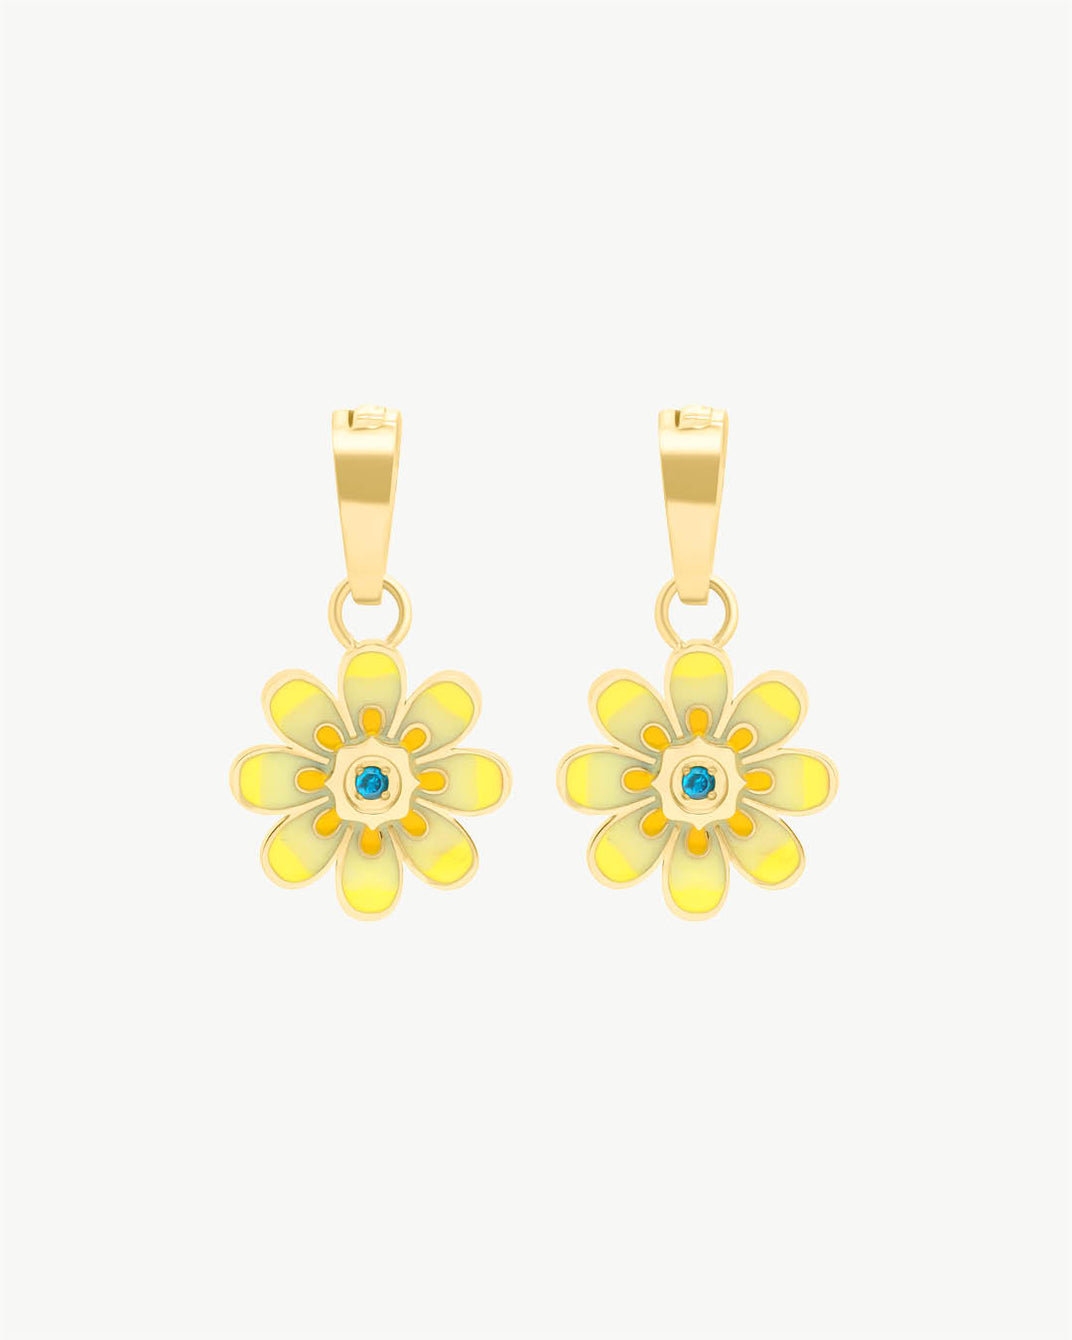 Pendentifs Boucle D'oreille Oopsy Daisy Jaune, Or